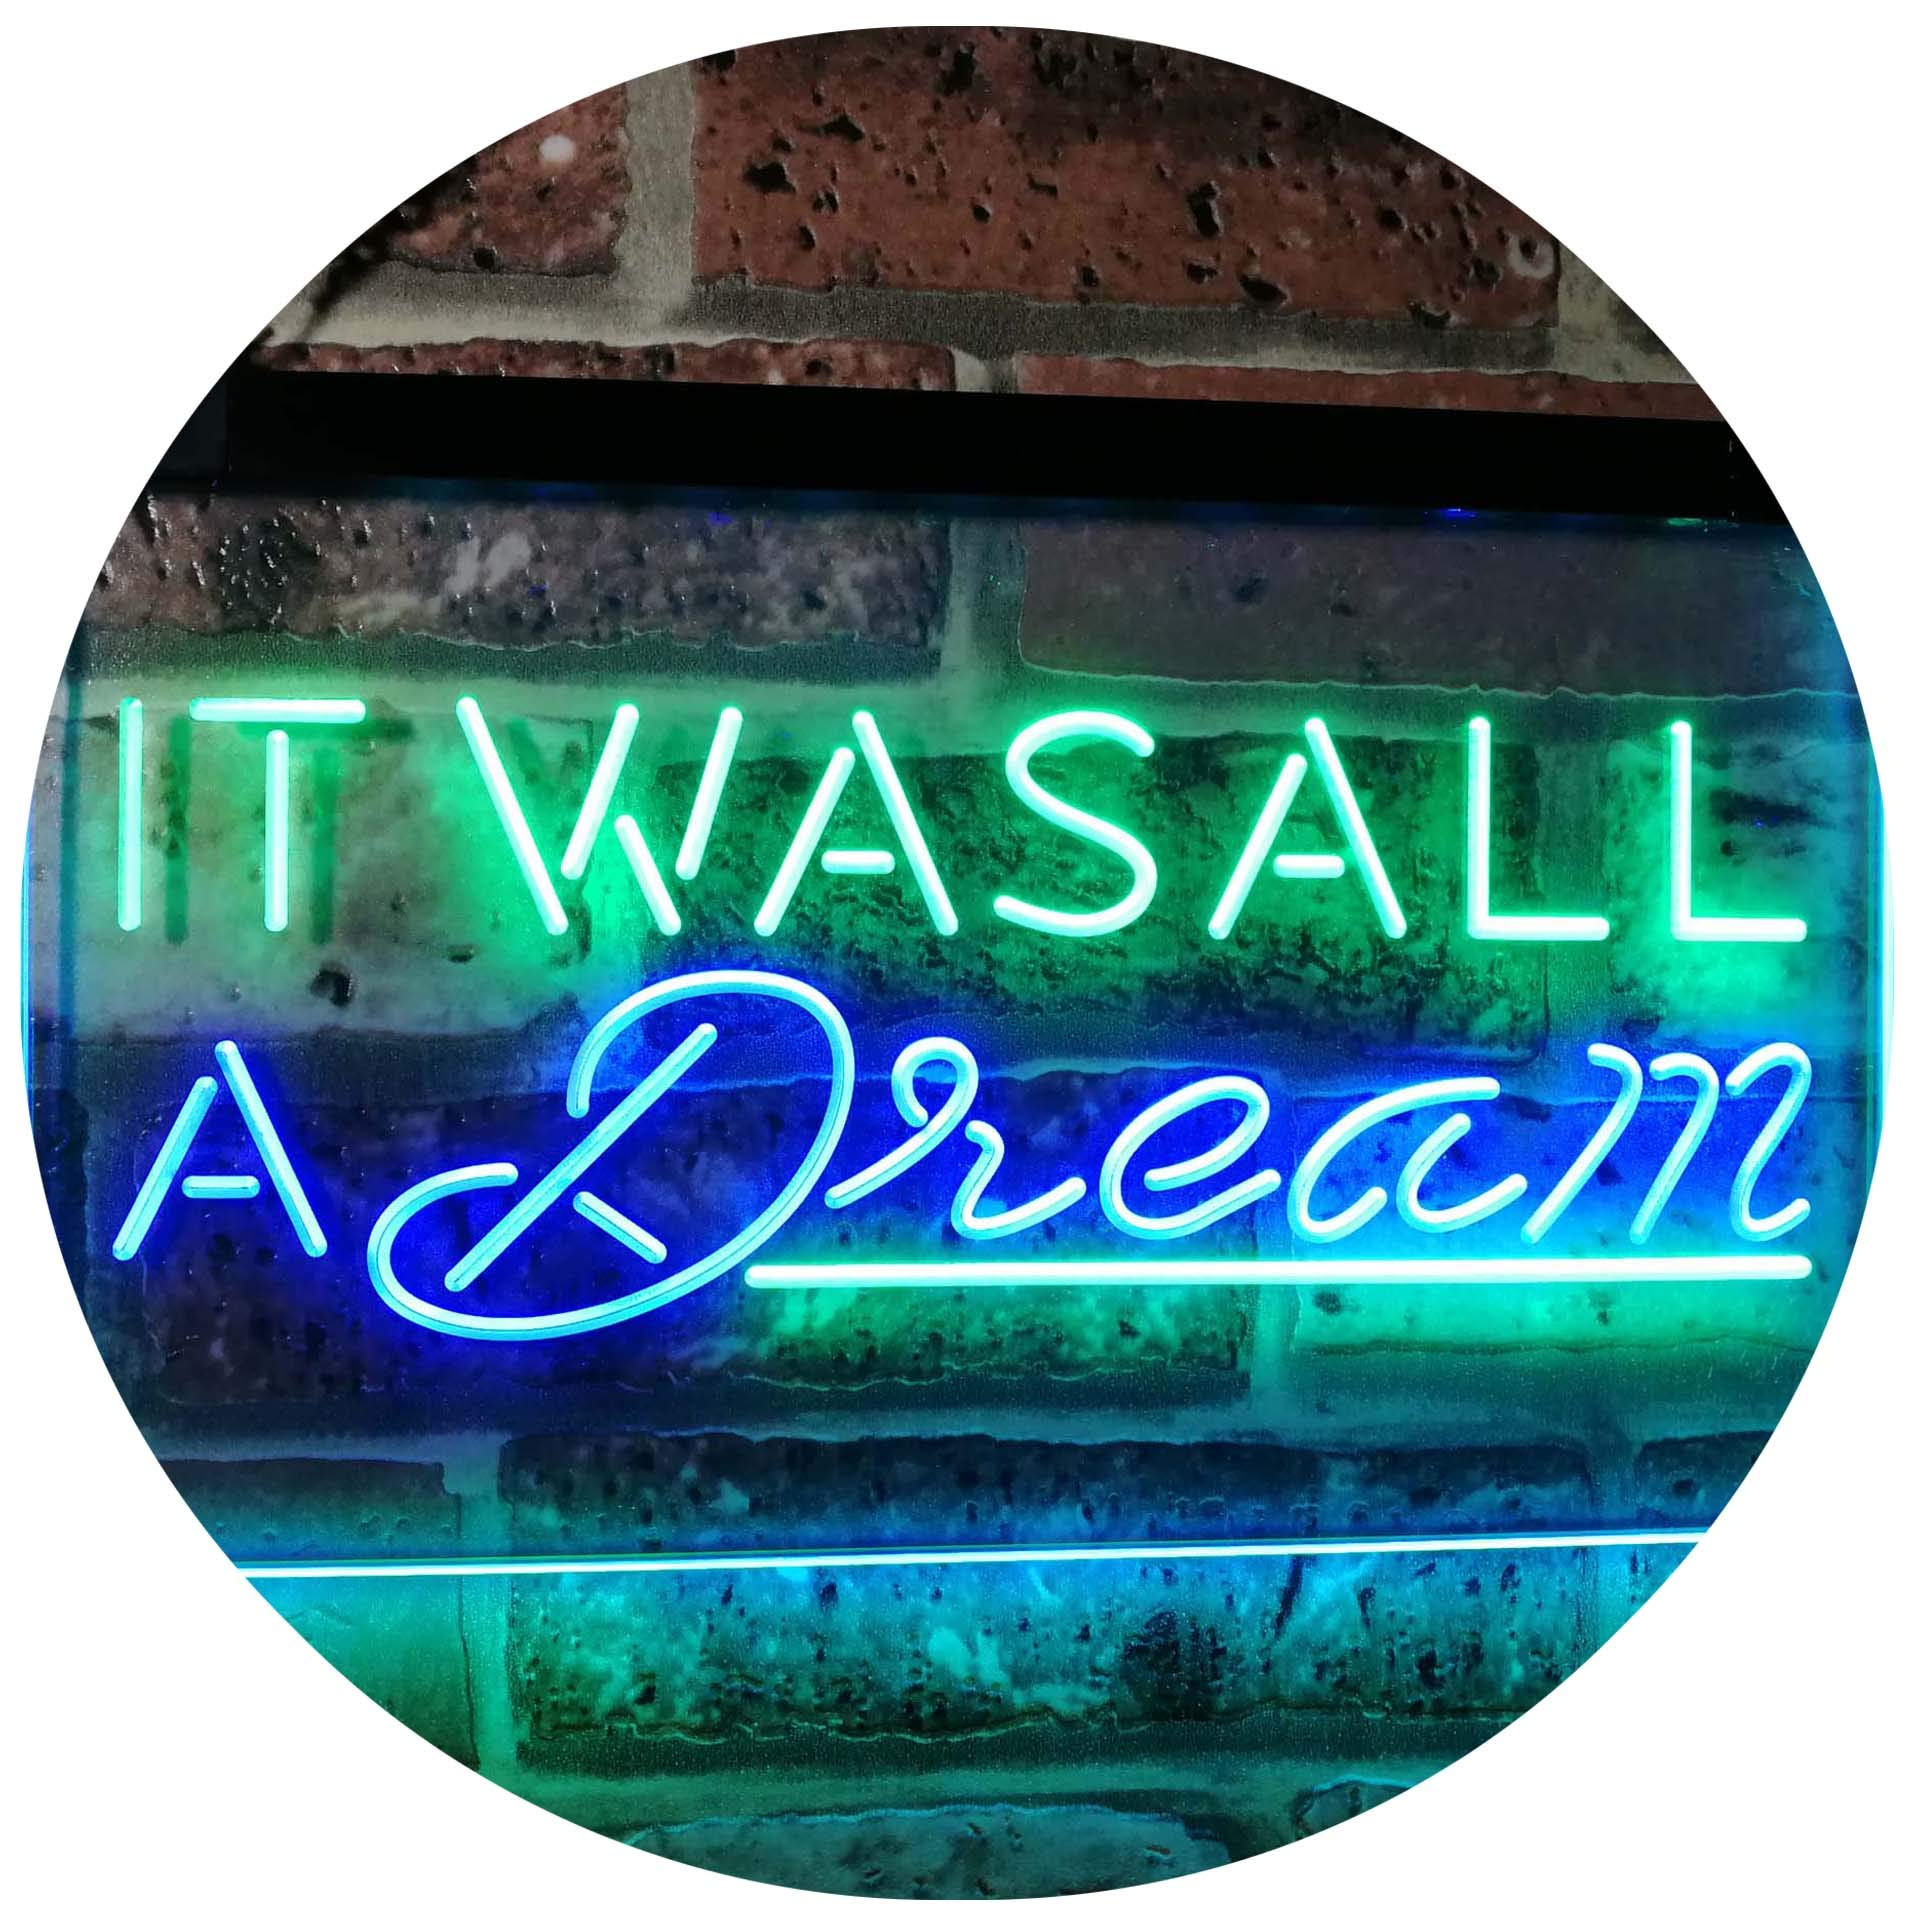 "ADVPRO It was All a Dream Home Décor Gift Dual Color LED Neon Sign Green & Blue 12"" x 8.5"" st6s32-i3122-gb"